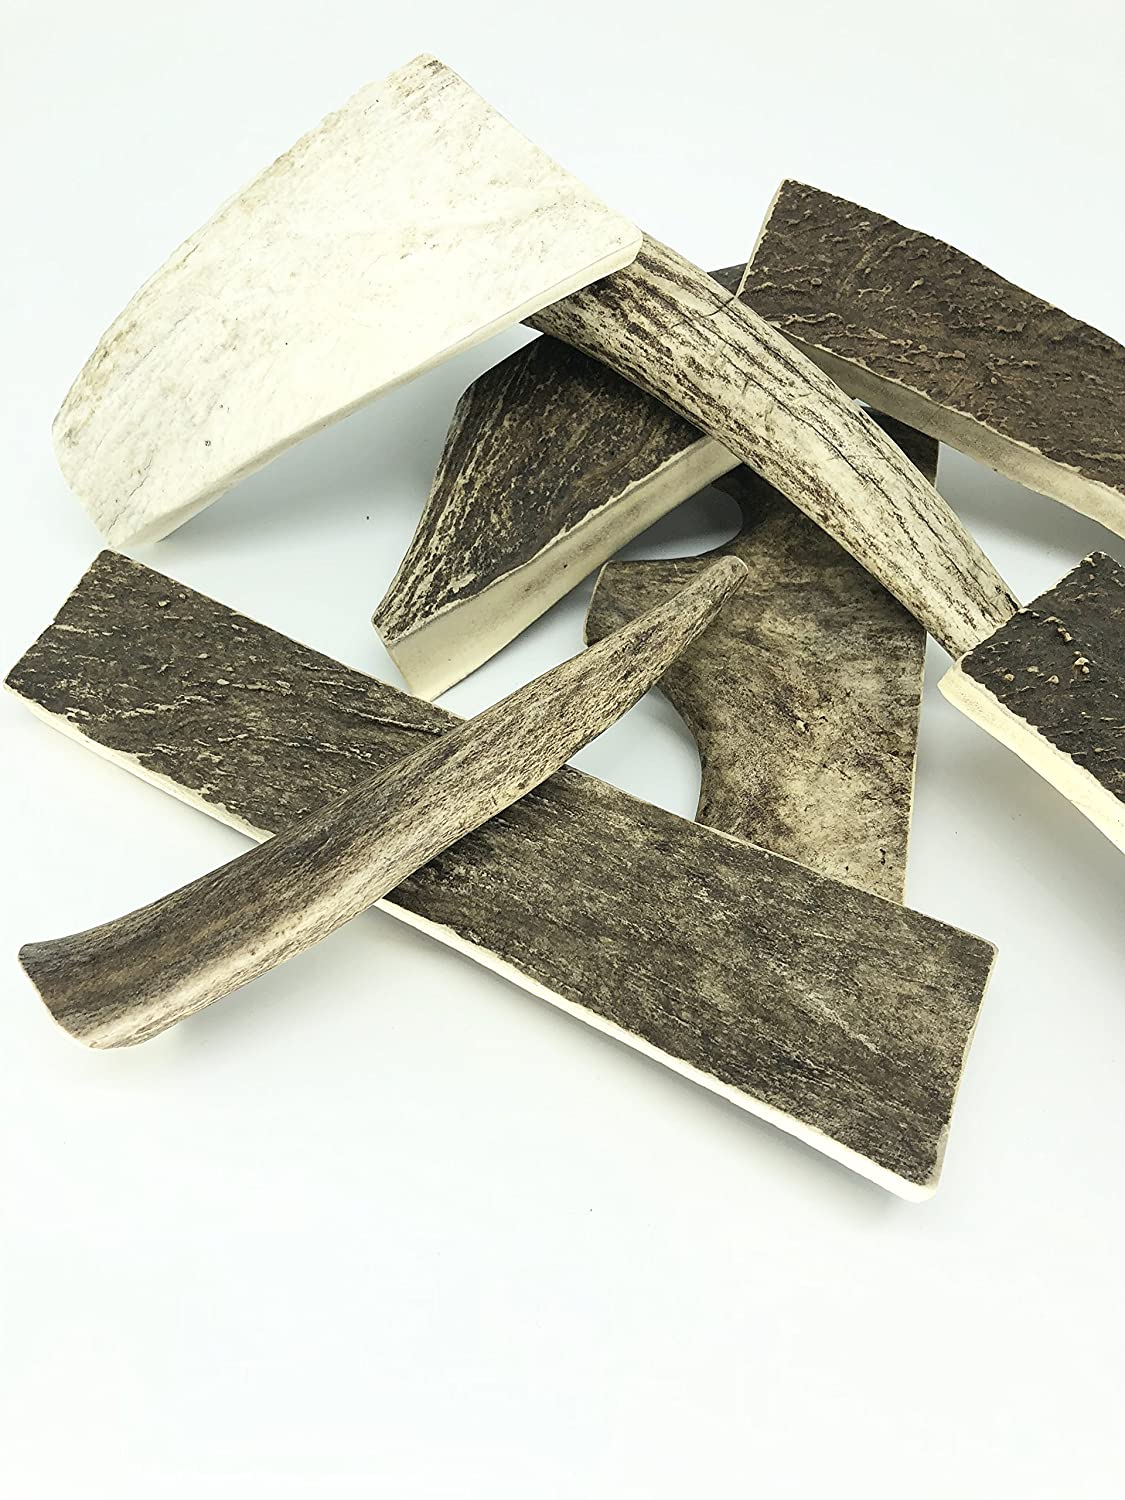 Premium Moose Dog Chew Antler Pieces - Antlers by The Pound, One Pound -  5 5 Inches or Longer (4-5 Pieces) Super Value Pack *Make in Canada